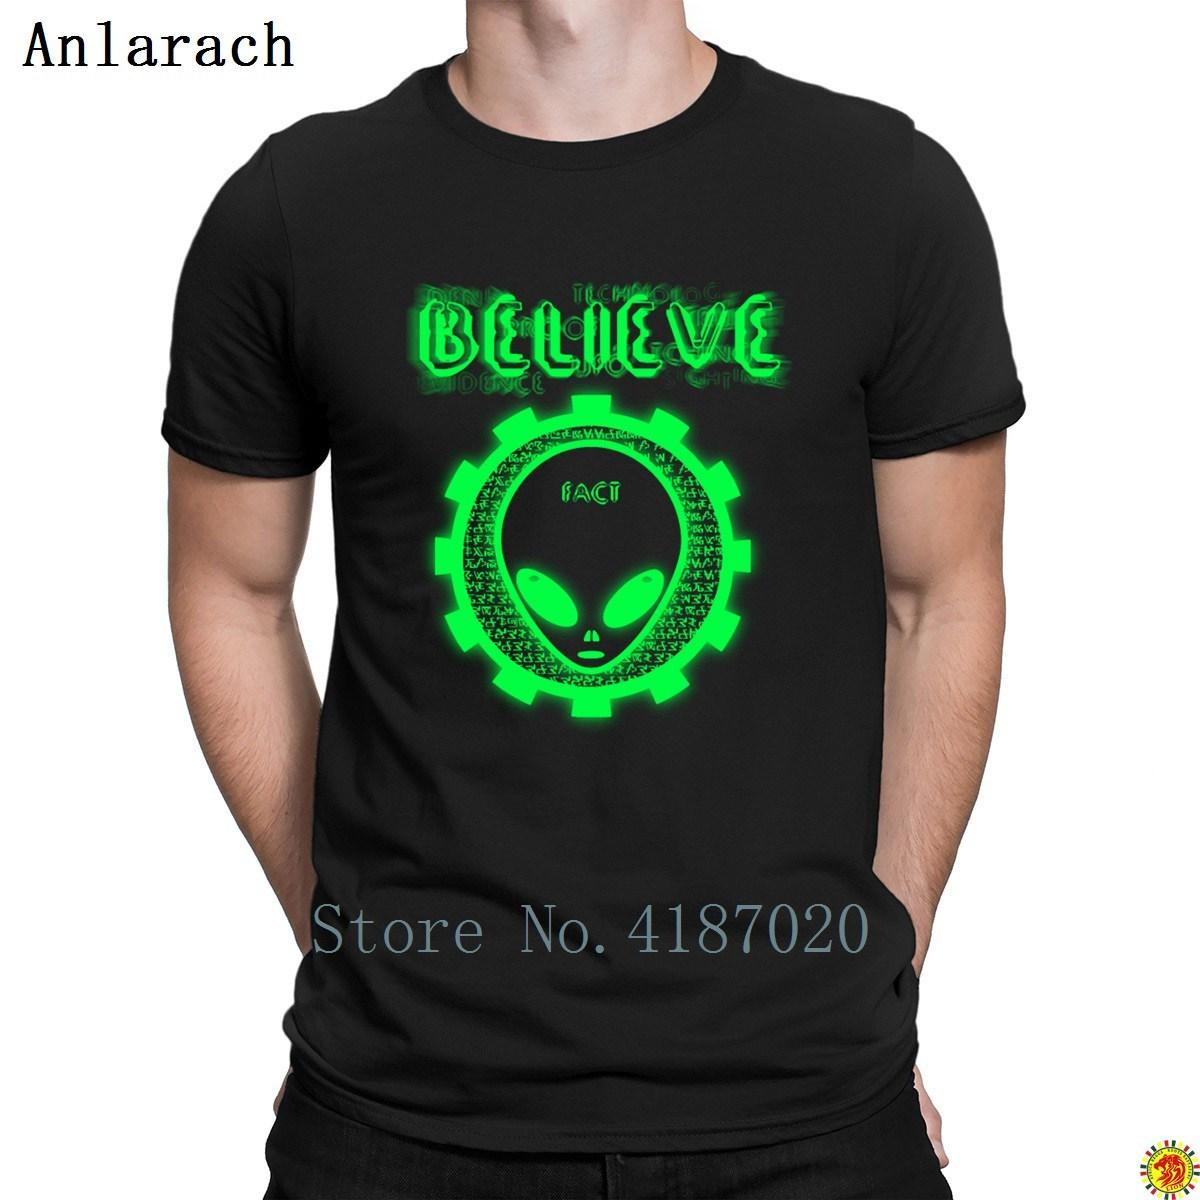 Believe Alien Fact T-Shirt Funny Pop Top Tee Slim Round Collar T Shirt For Men Stylish Summer Designing Top Quality